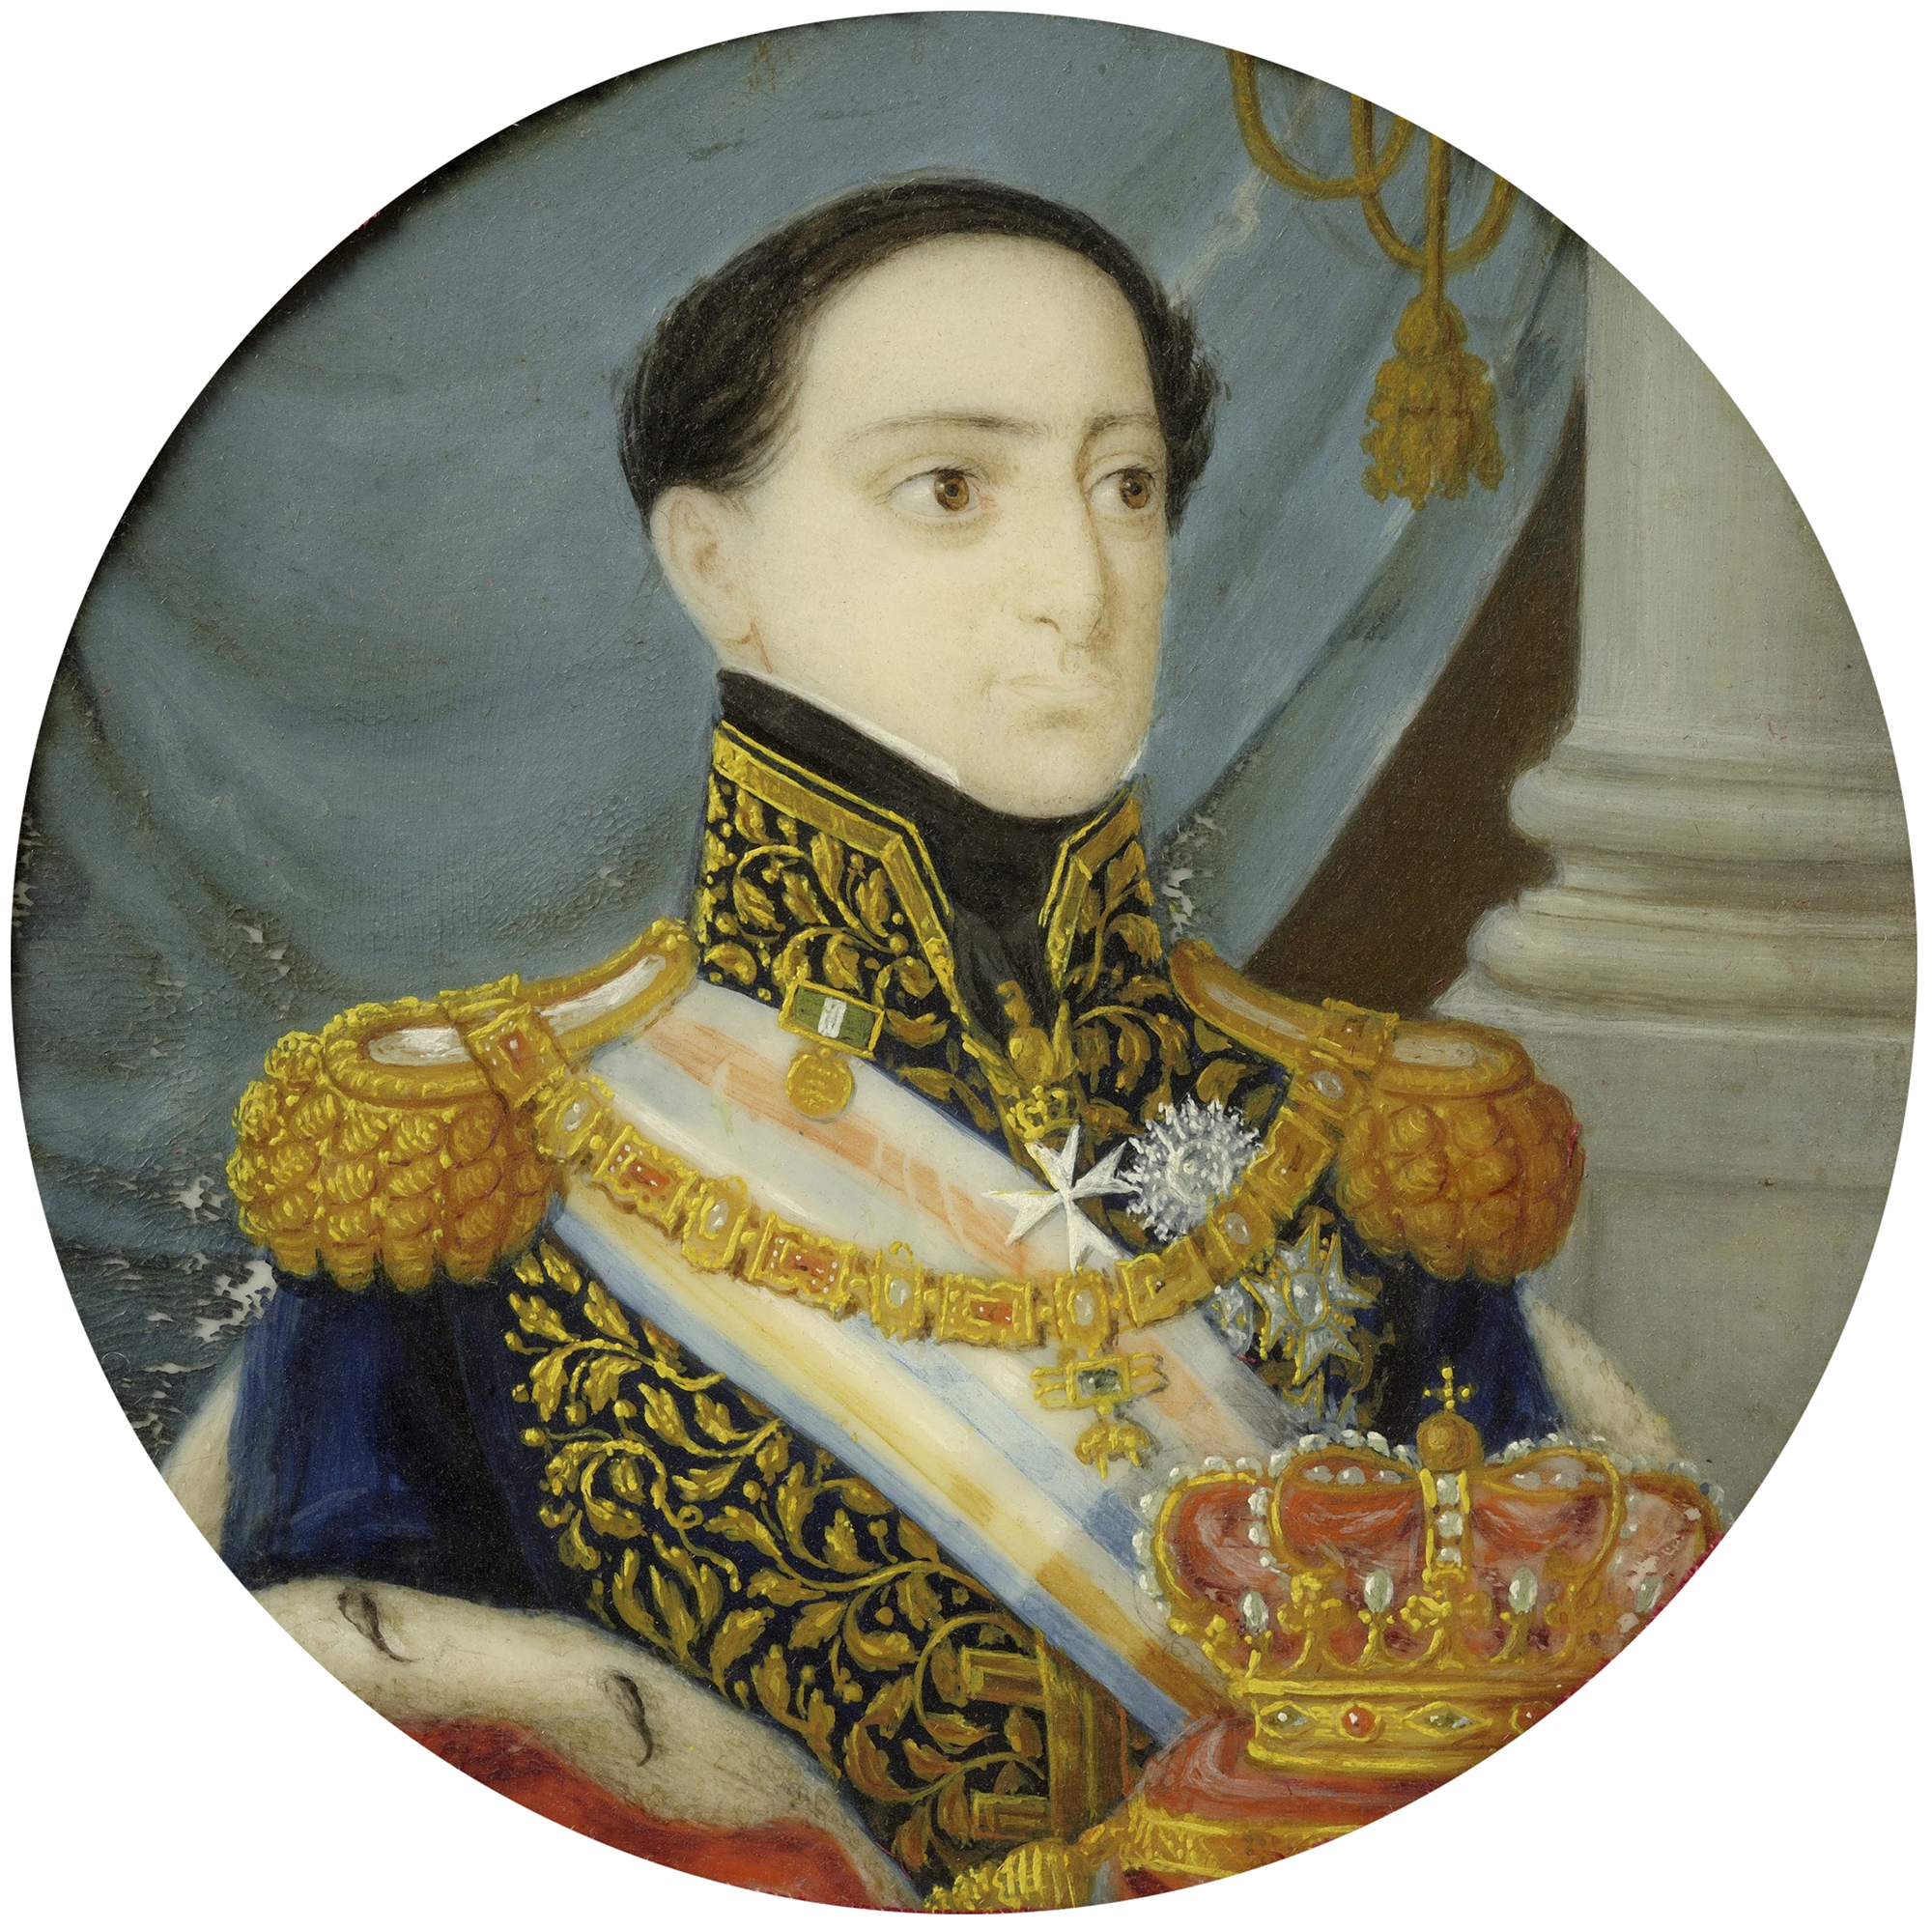 Portrait of Miguel I (1802-1866), King of Portugal (1828-1834), 1828 | Portraits of Kings